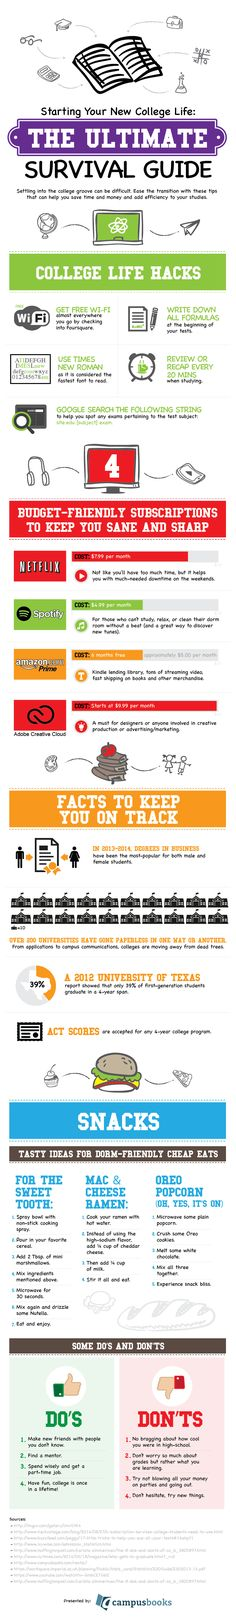 In terms of transitions, settling into college is a major one that can be super-stressful. Not only that, on-campus life can be an environment conducive to picking up bad habits and losing sight of priorities. Getting into college and paying for college is difficult enough; now that you're there, set yourself up to not only... Read more »